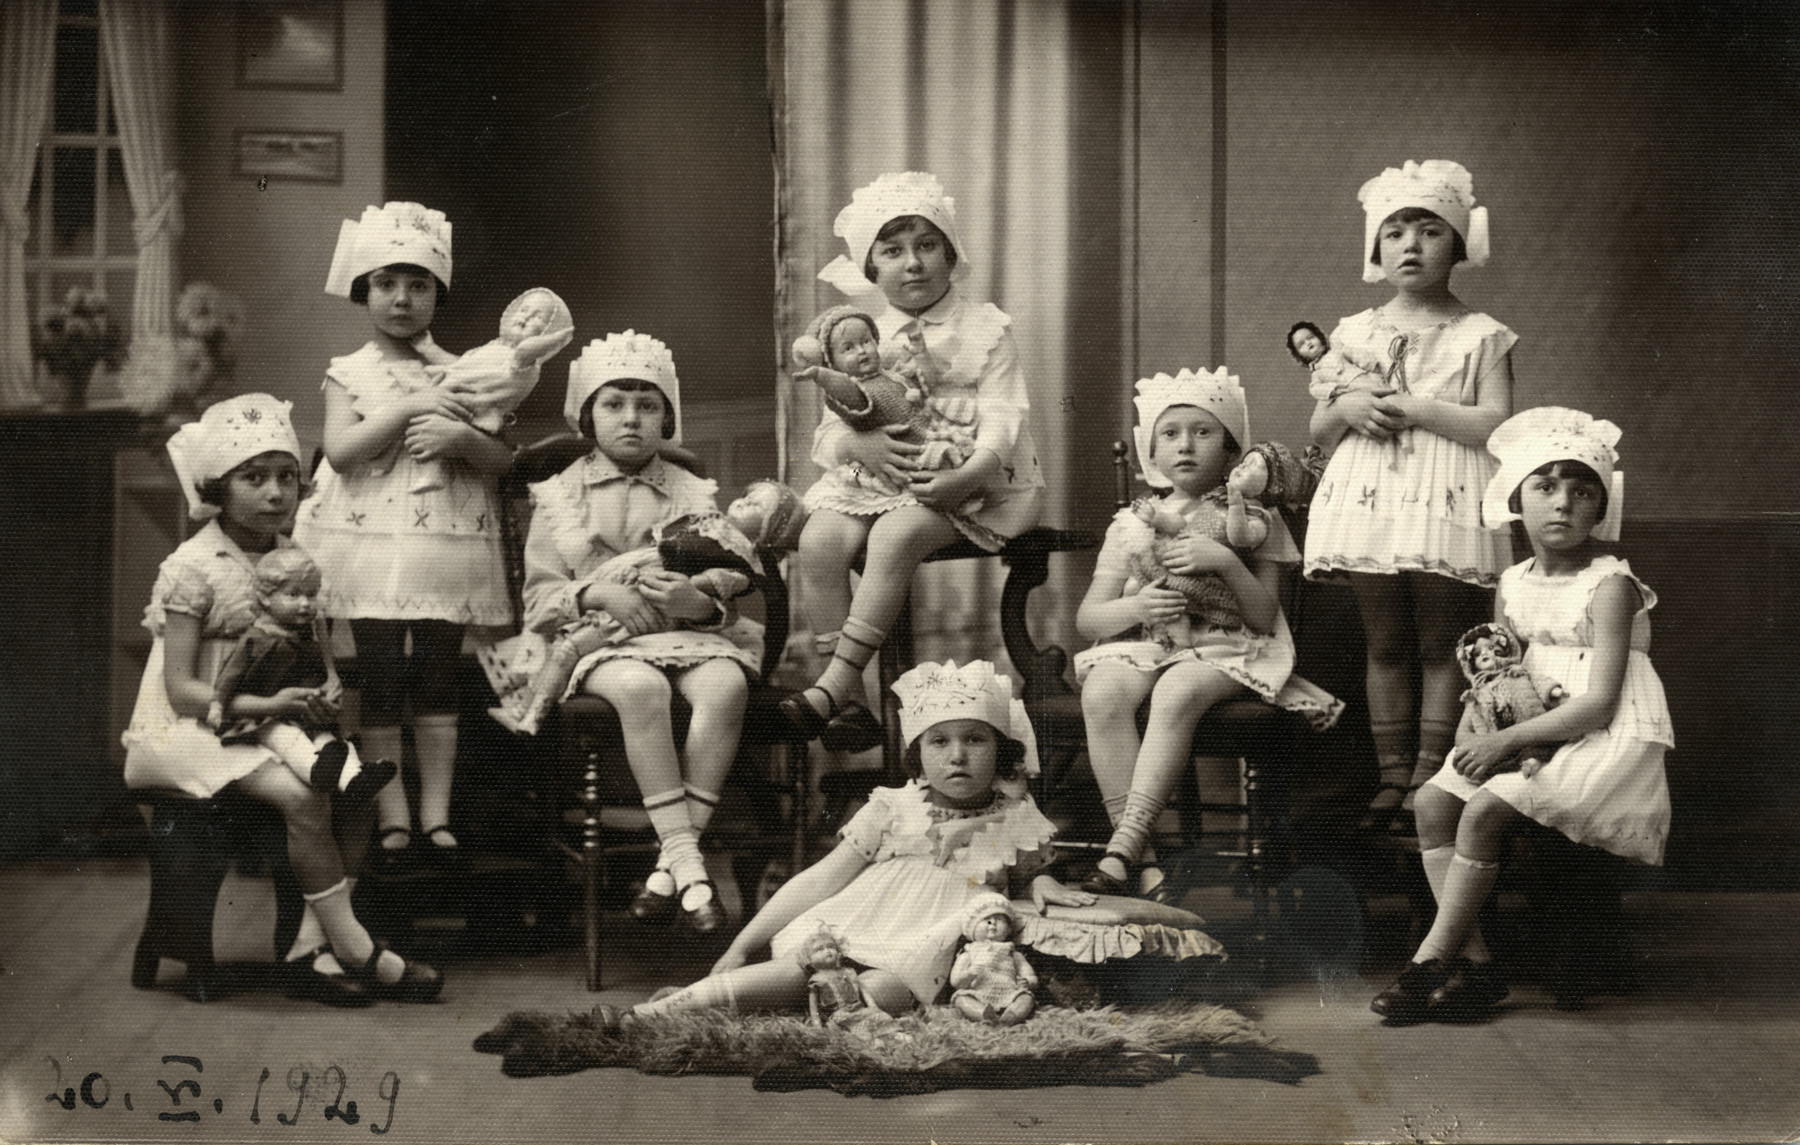 Studio portrait of kindergarten girls holding their dolls and wearing matching bonnets.  Ewa Krakowska is seated third from the right.